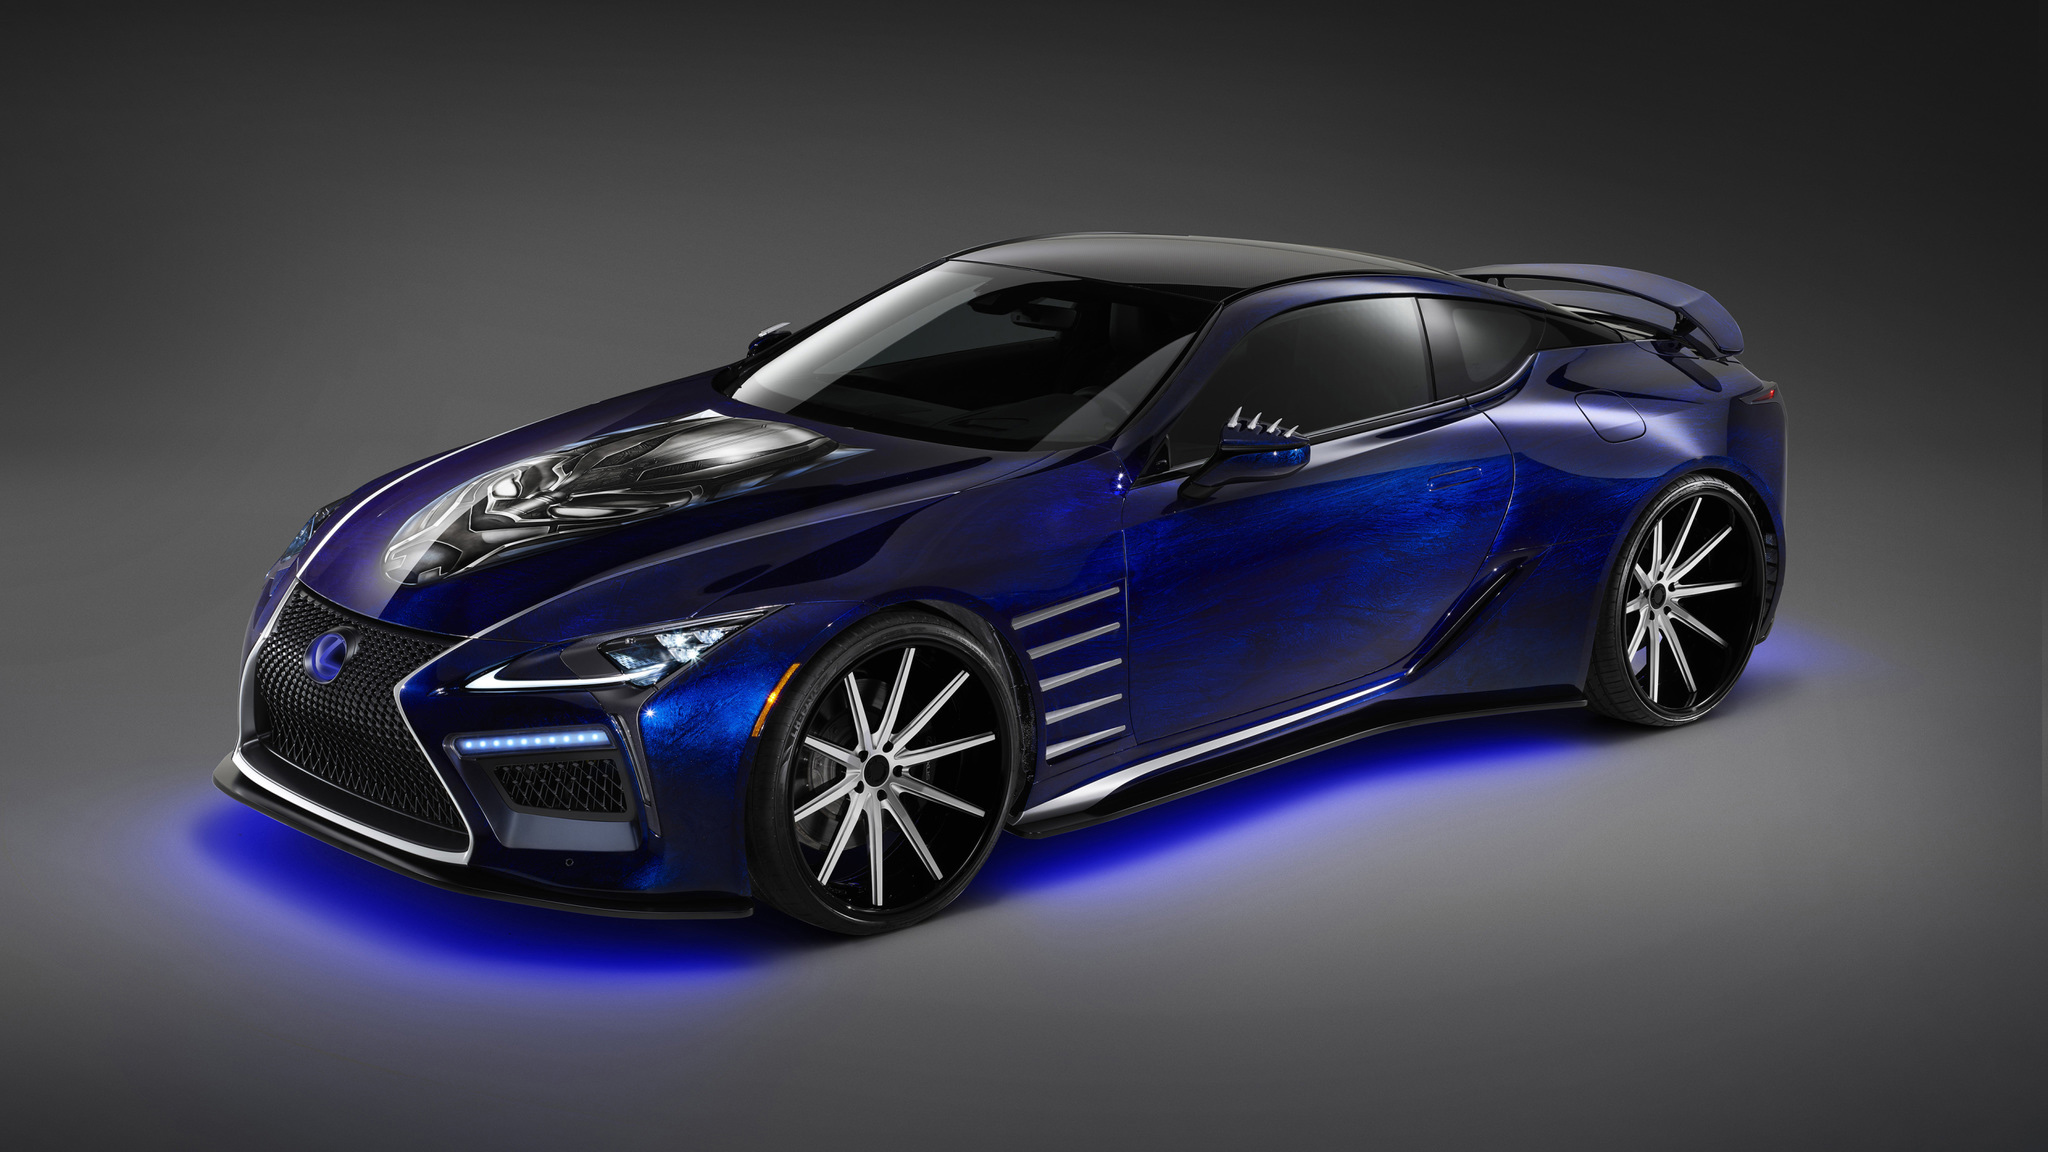 2018 Best Car Wallpapers: 2018 Lexus LC Black Panther Special Edition Wallpaper